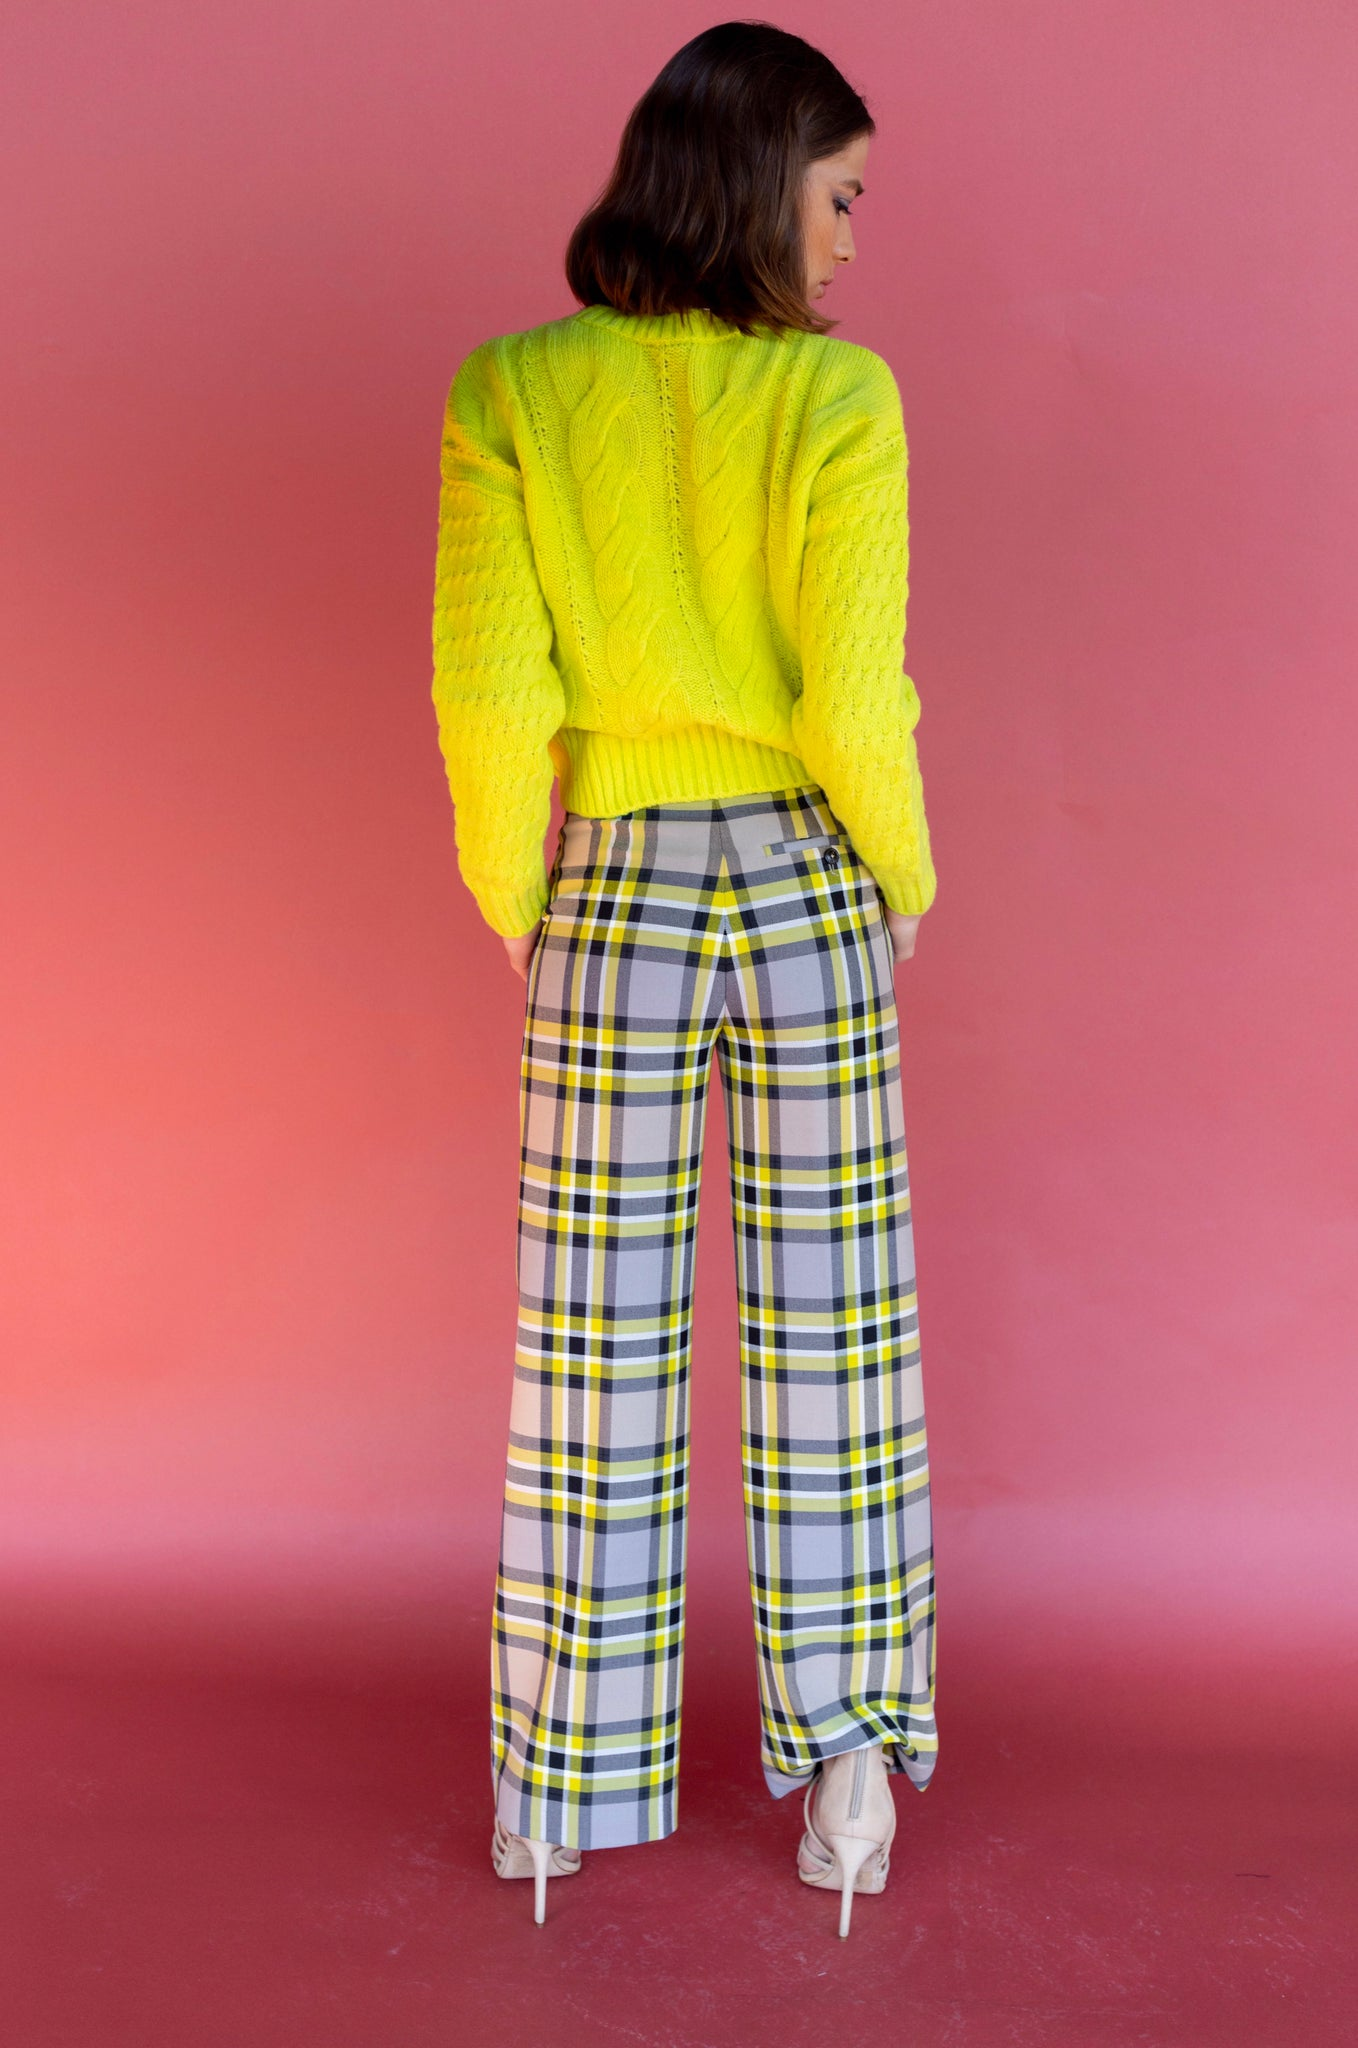 Closed Knit Lemon Peel Sweater